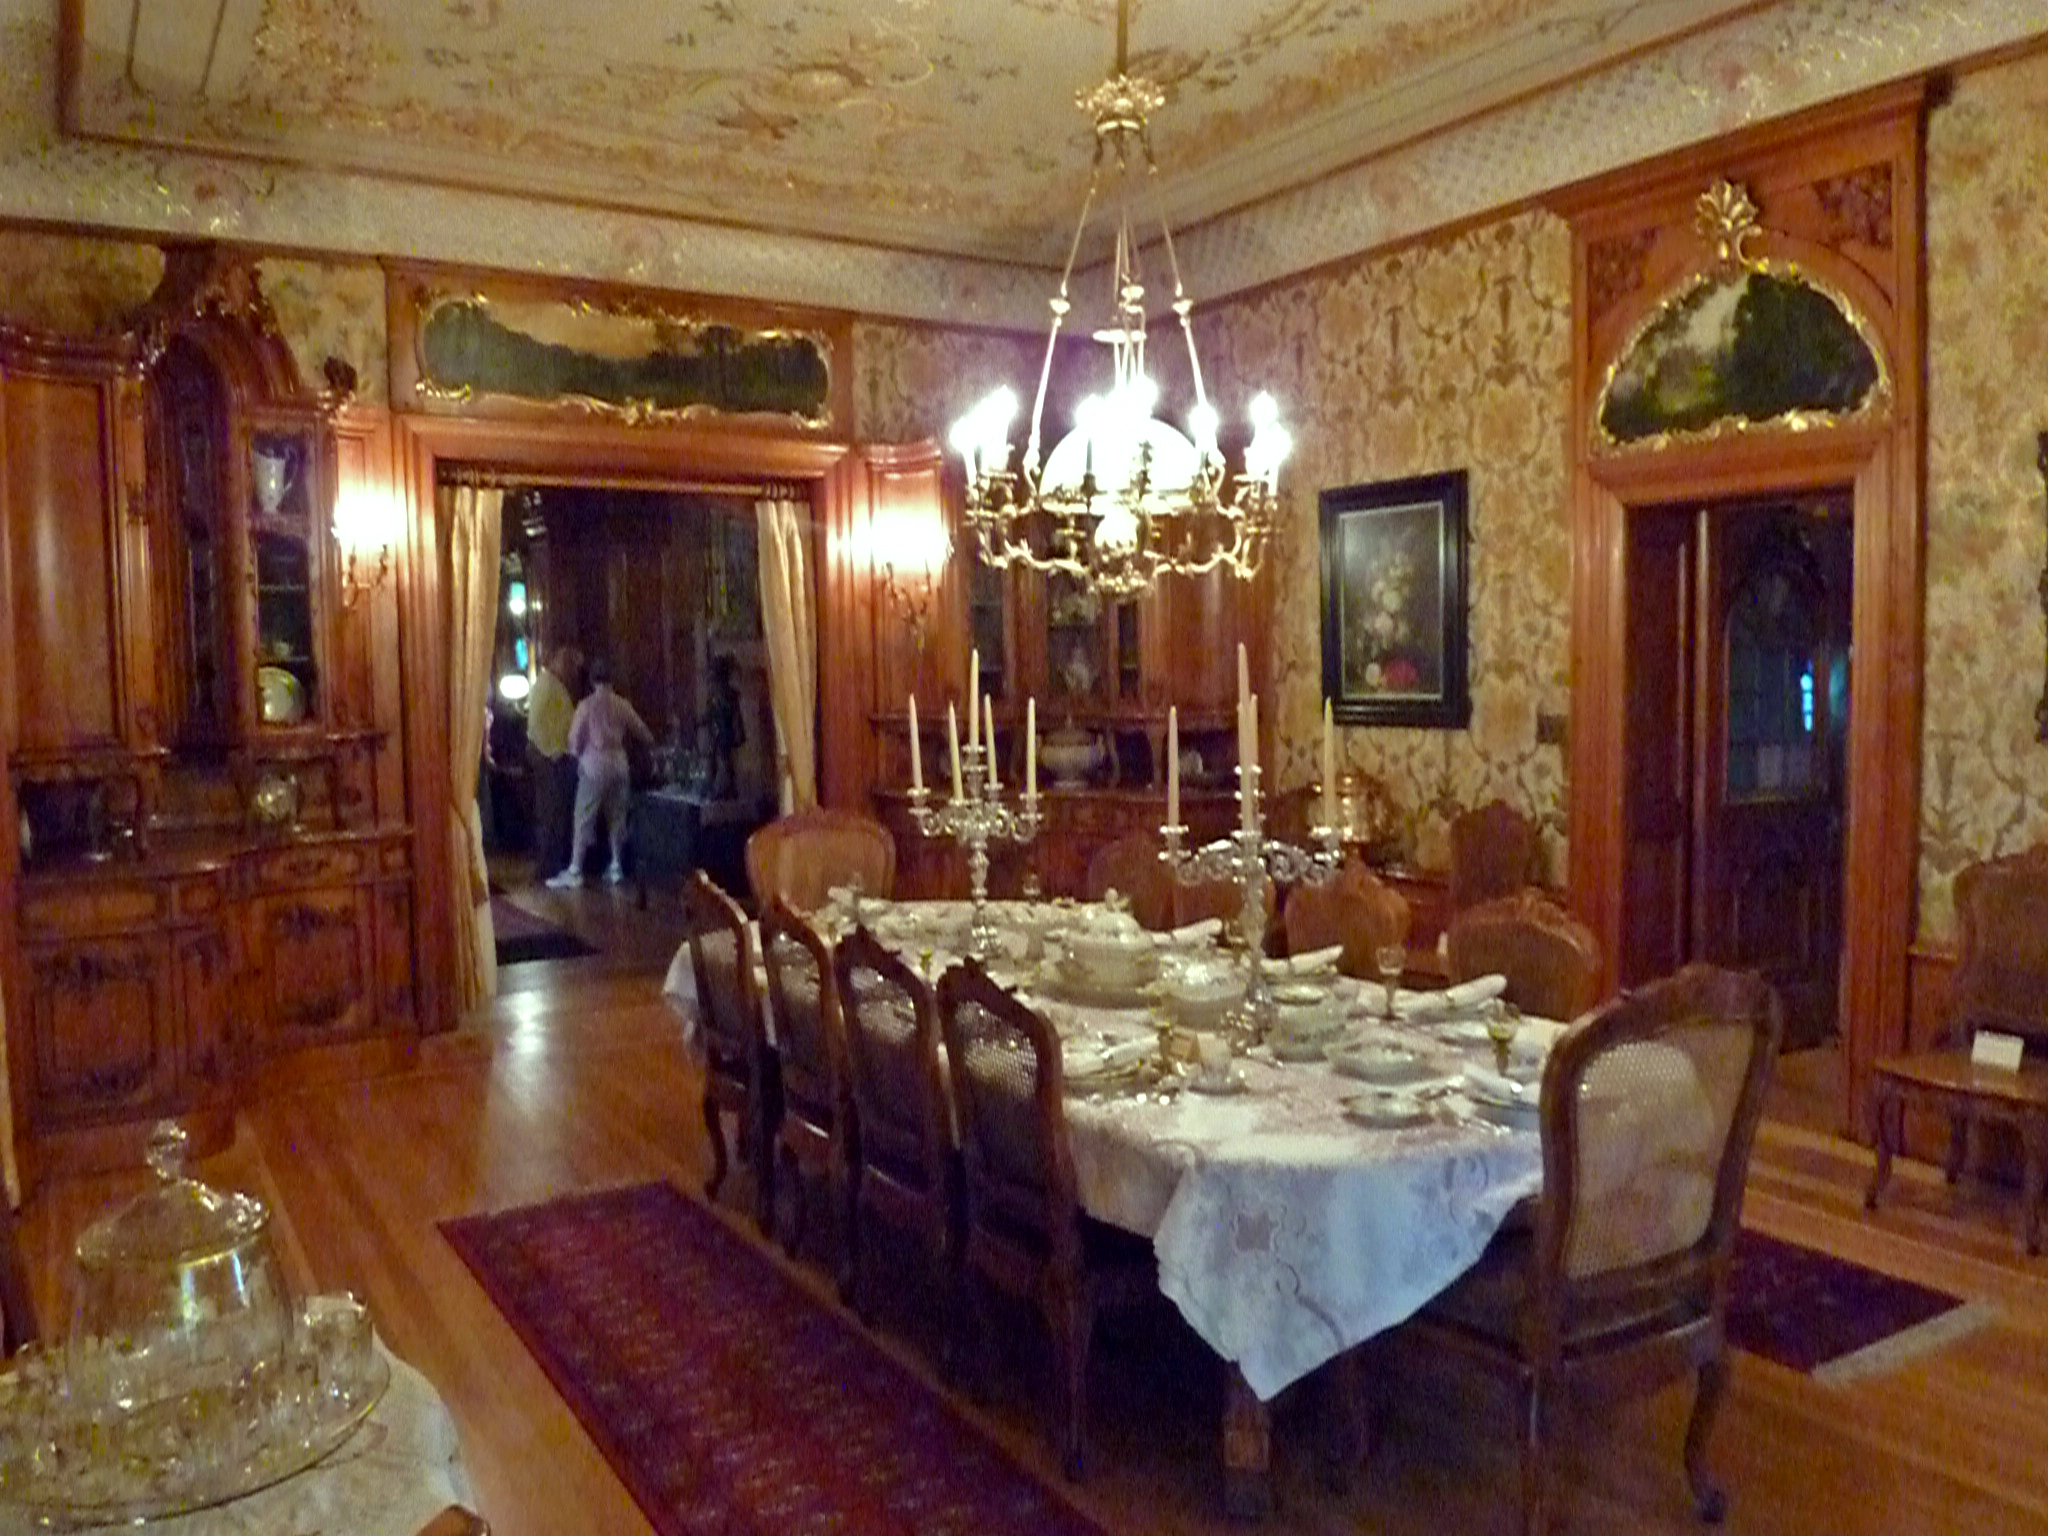 FileDining Room Pabst Mansionjpg Wikimedia Commons